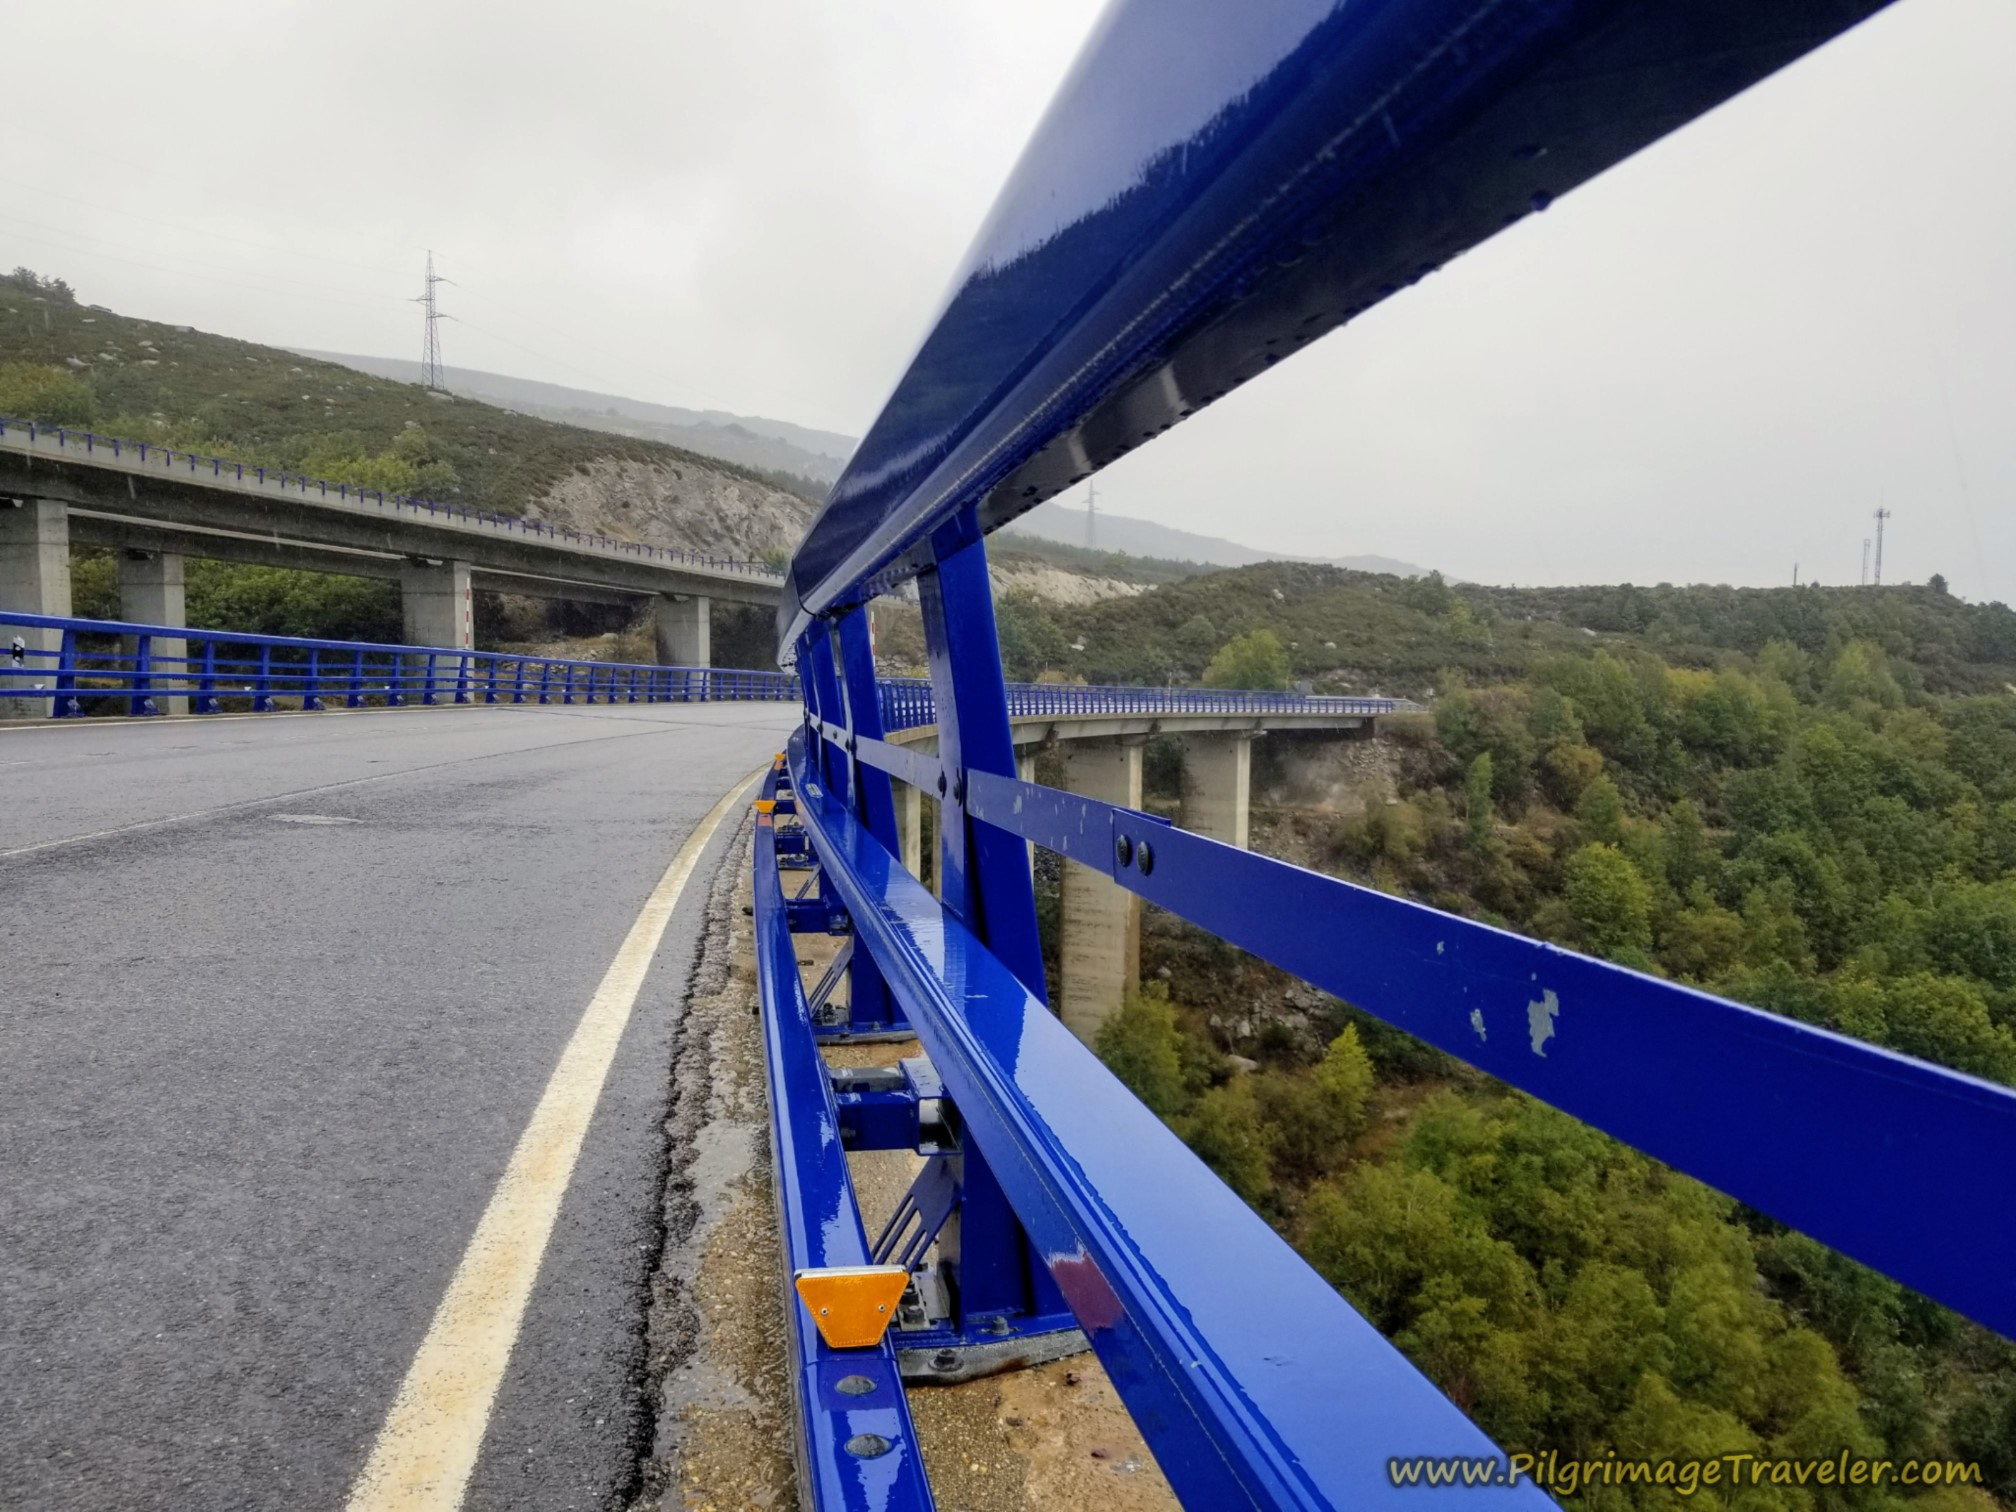 N-525 Viaduct Parallels with the A-52 Motorway on the Camino Sanabrés from Puebla de Sanabria to Lubián